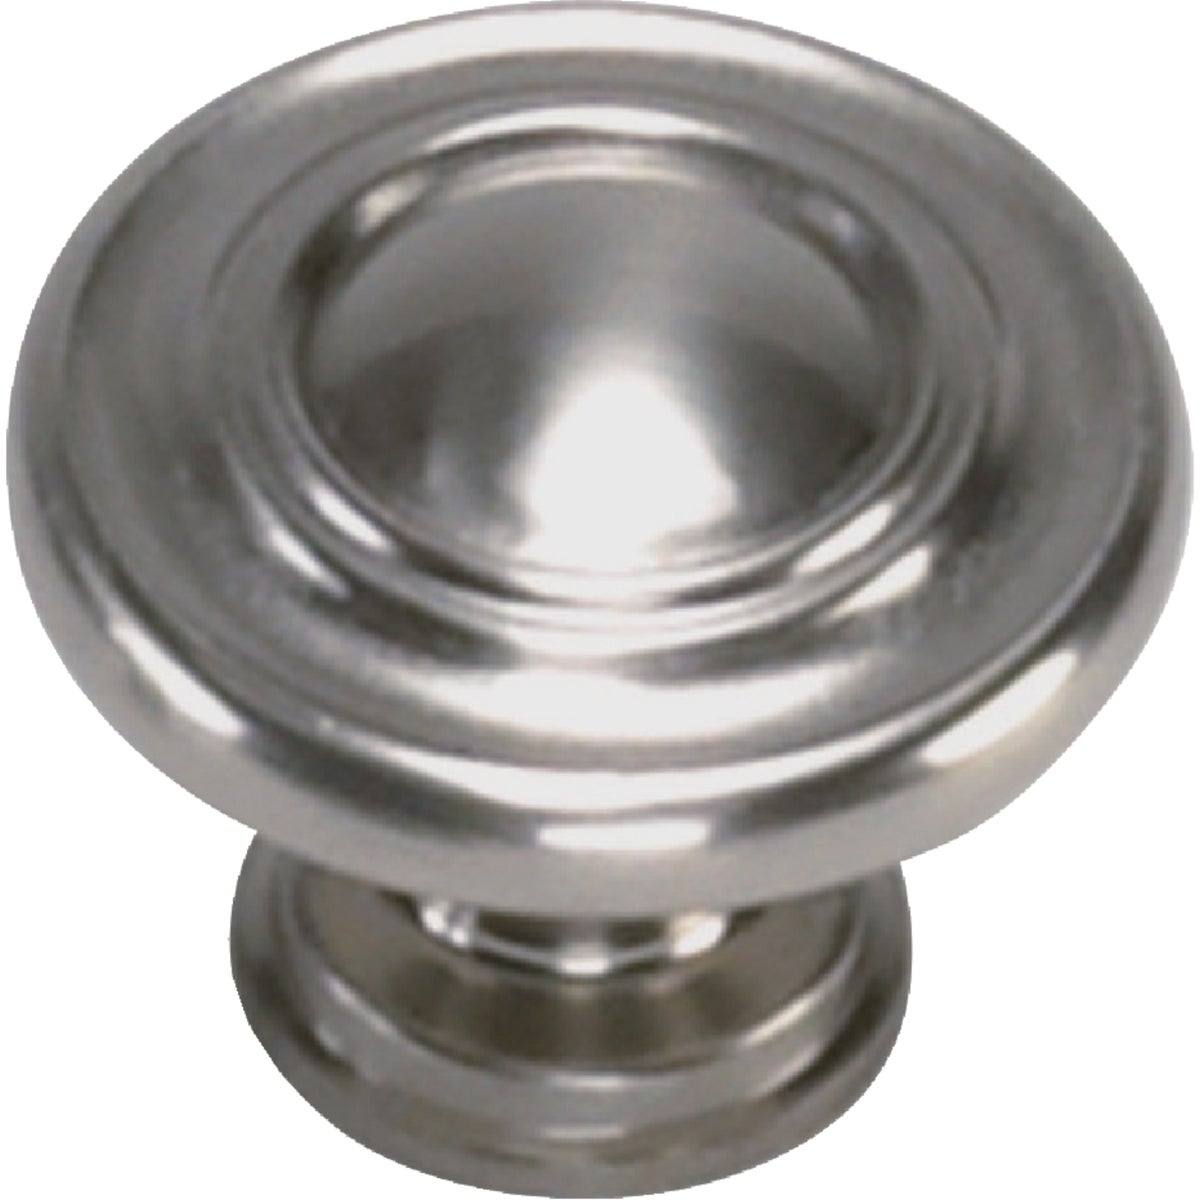 """1-3/8"""" SATIN PEWTER KNOB - 51839 by Laurey Co"""